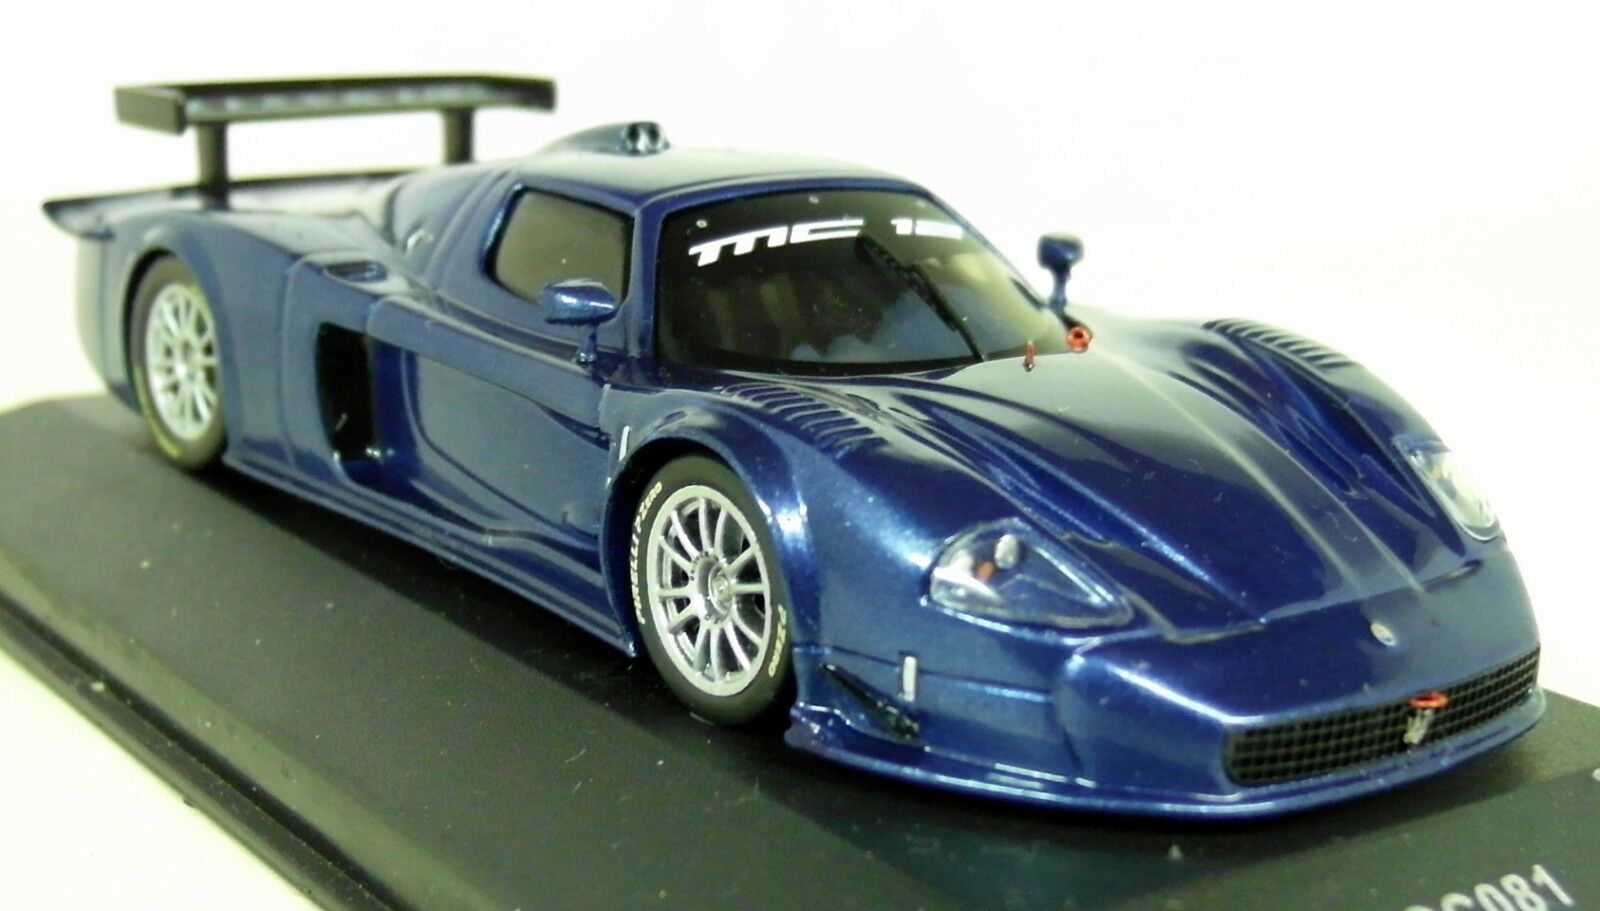 Ixo 1 43 Scale - MOC081 Maserati MC12 Versione Corsa Met bluee Diecast Model Car